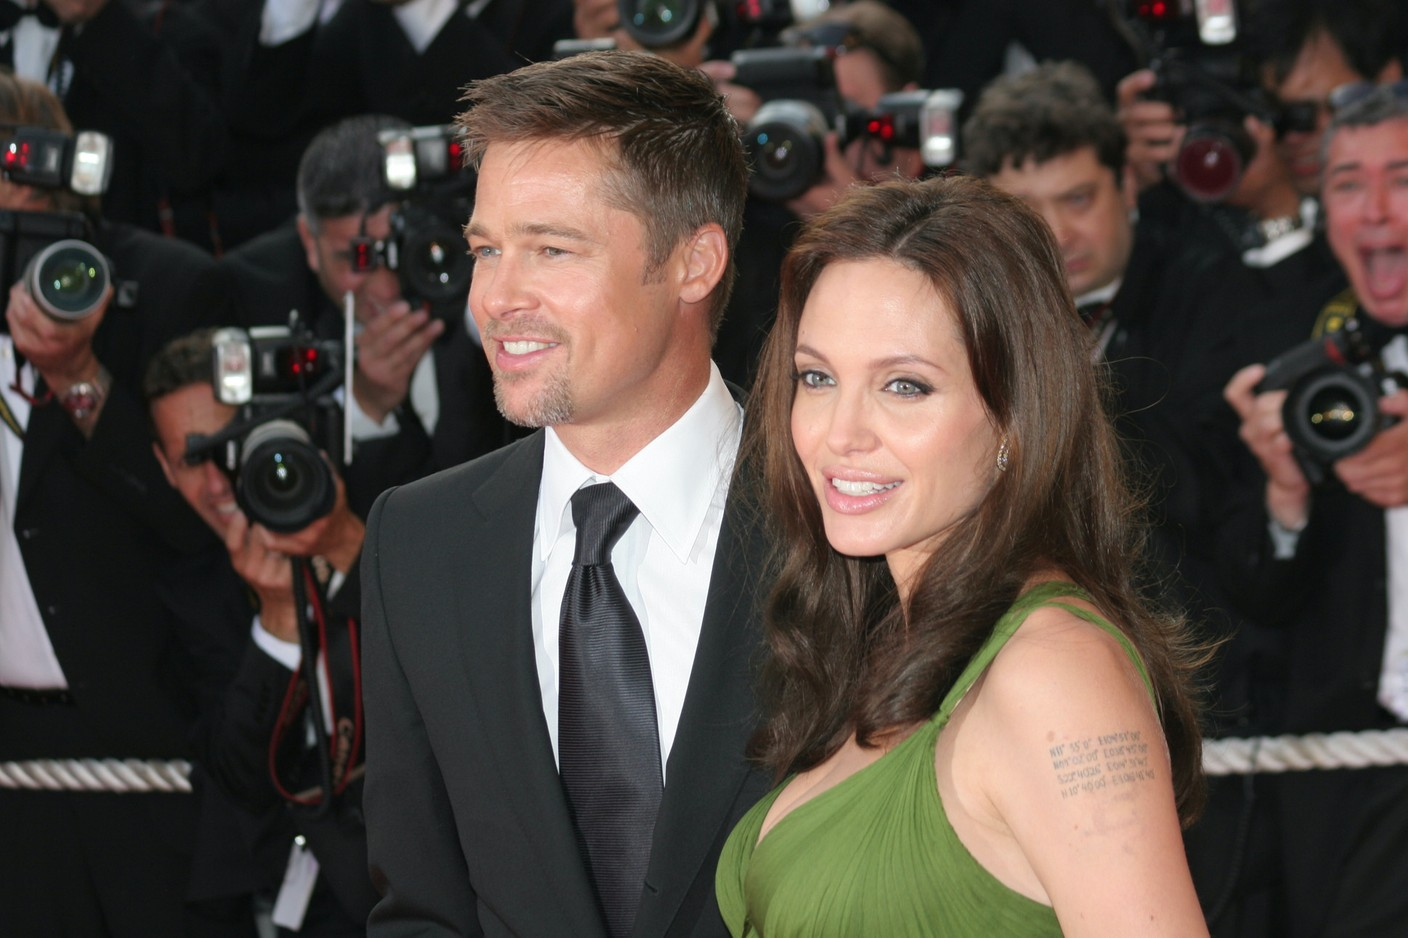 2008, happier times: Brad Pitt and Angelina Jolie, here in Cannes, discover the Château Miraval, which they would proceed to rent for three years before buying it for €35 to €55 million. The estate is at the heart of their divorce today. Photo: Shutterstock